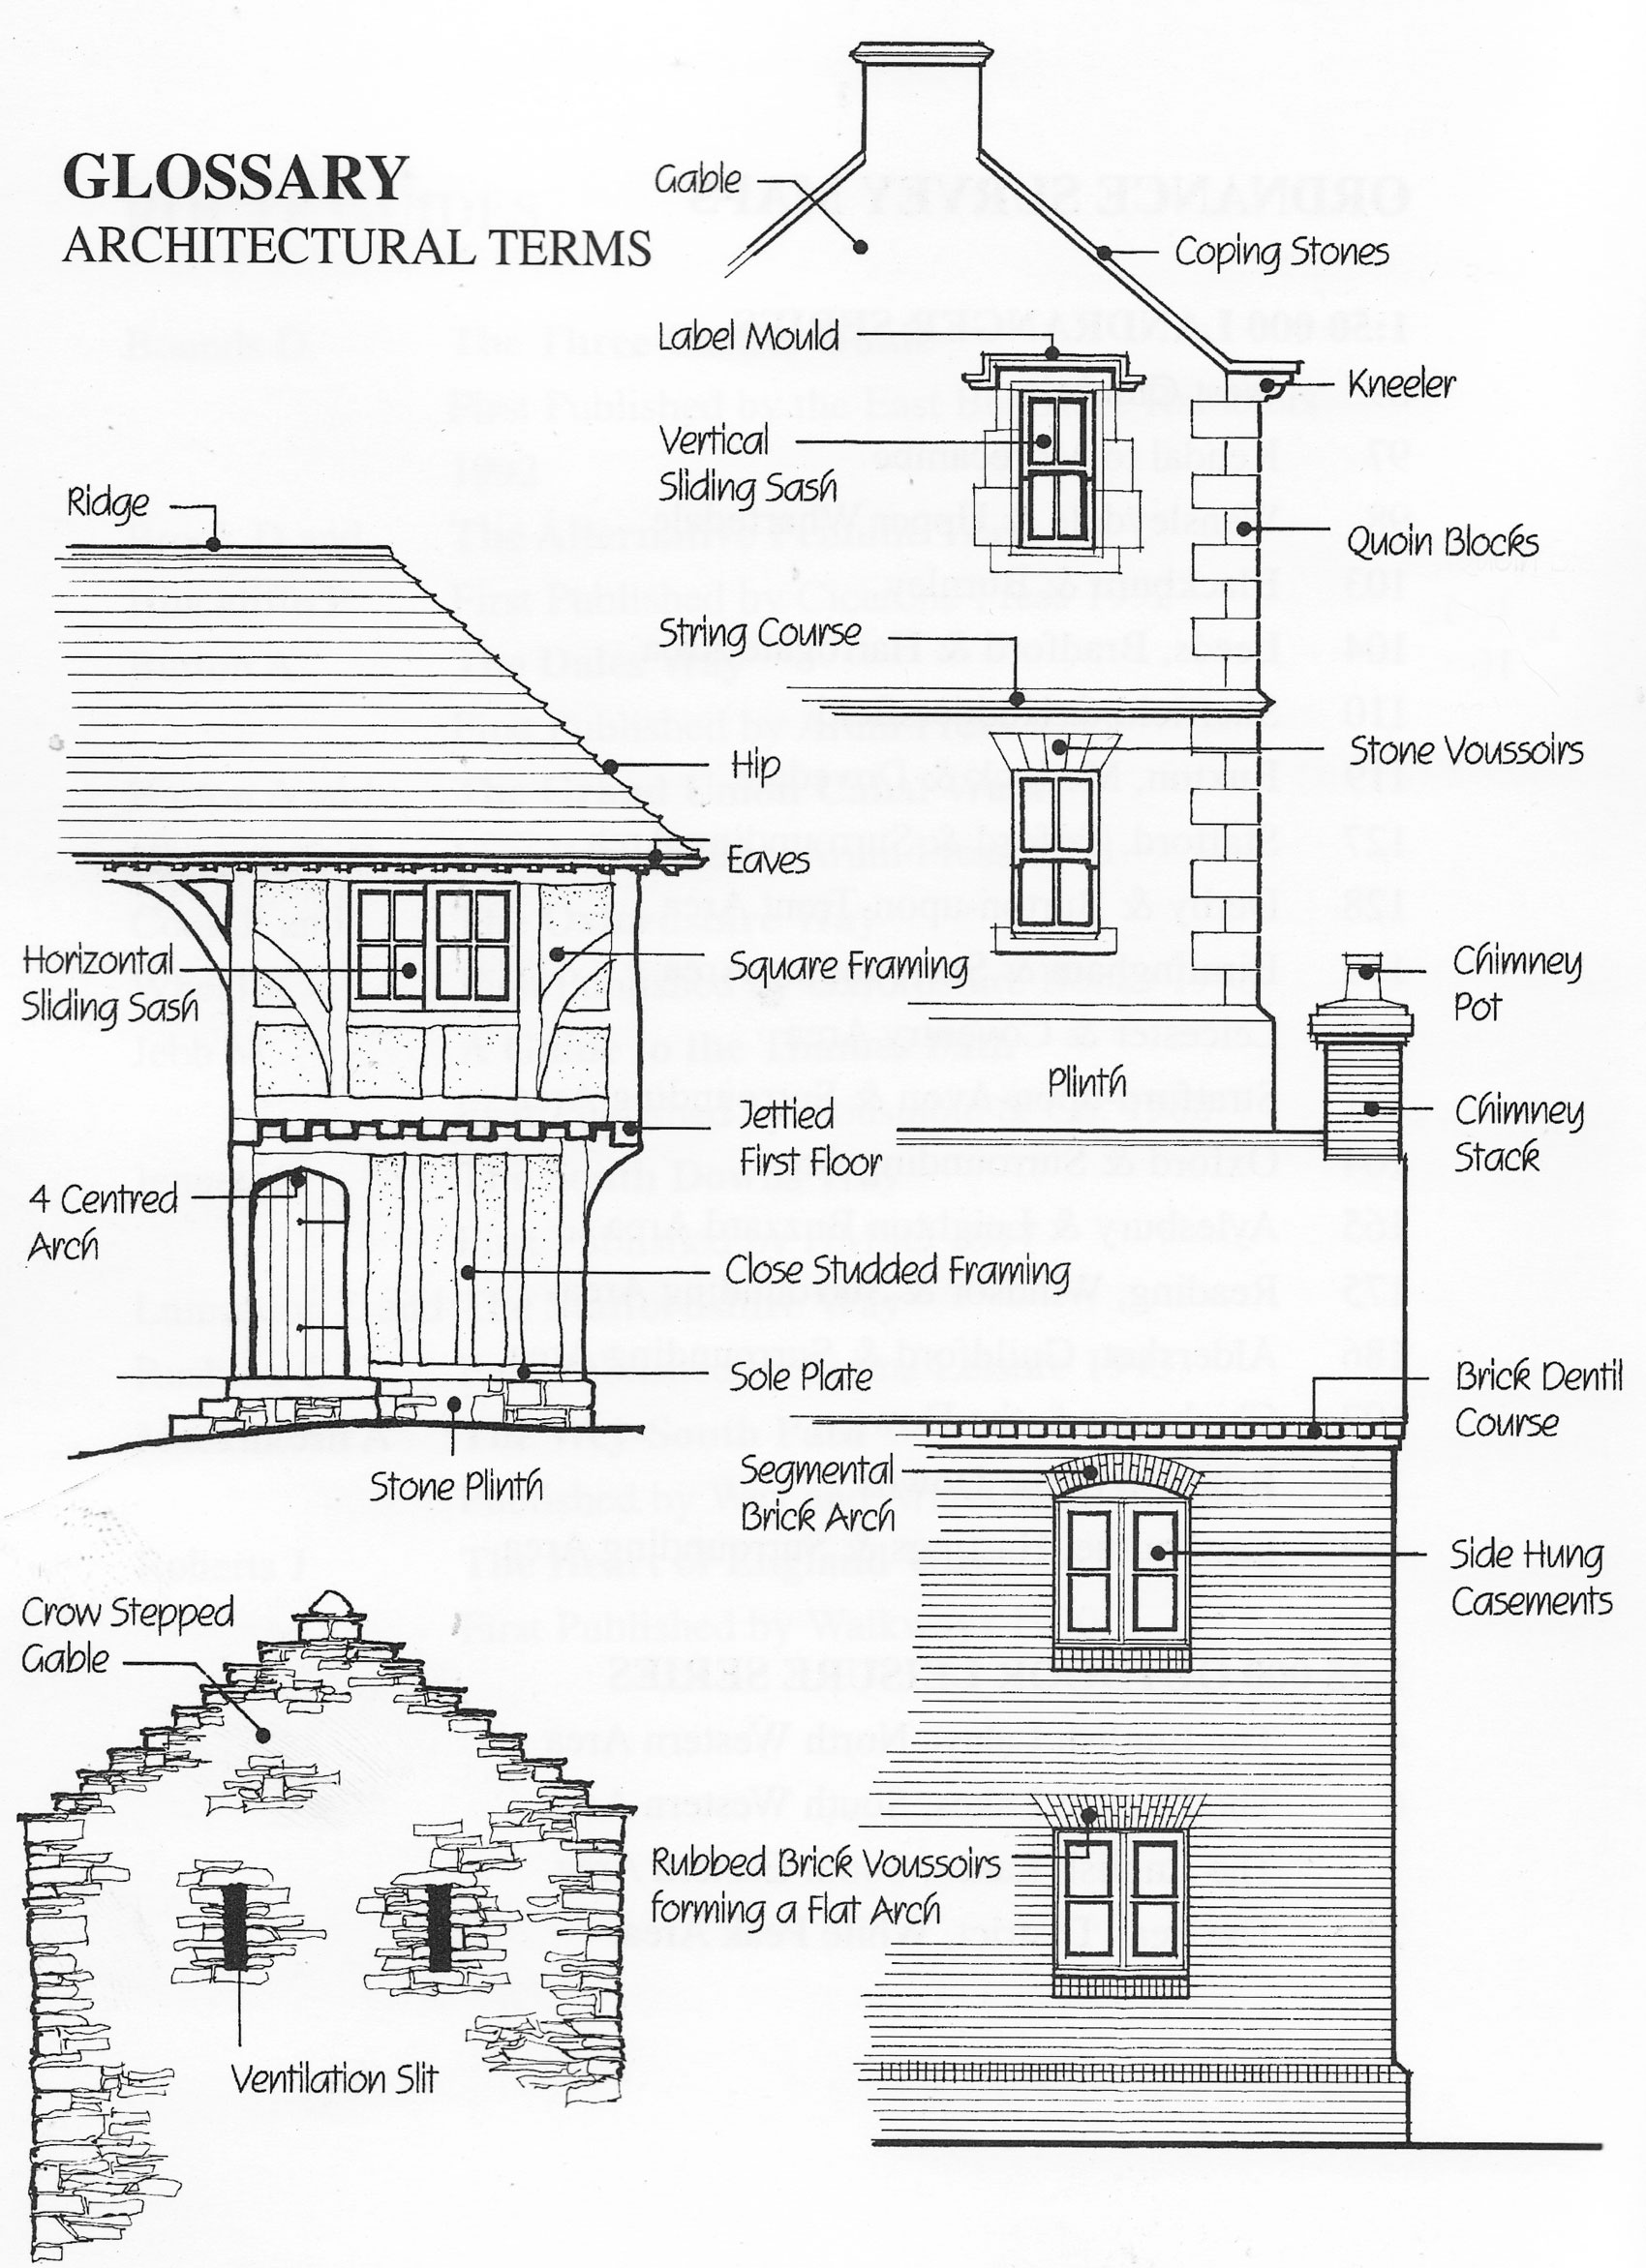 Tombleson associates independent surveyors blog for Home building terms